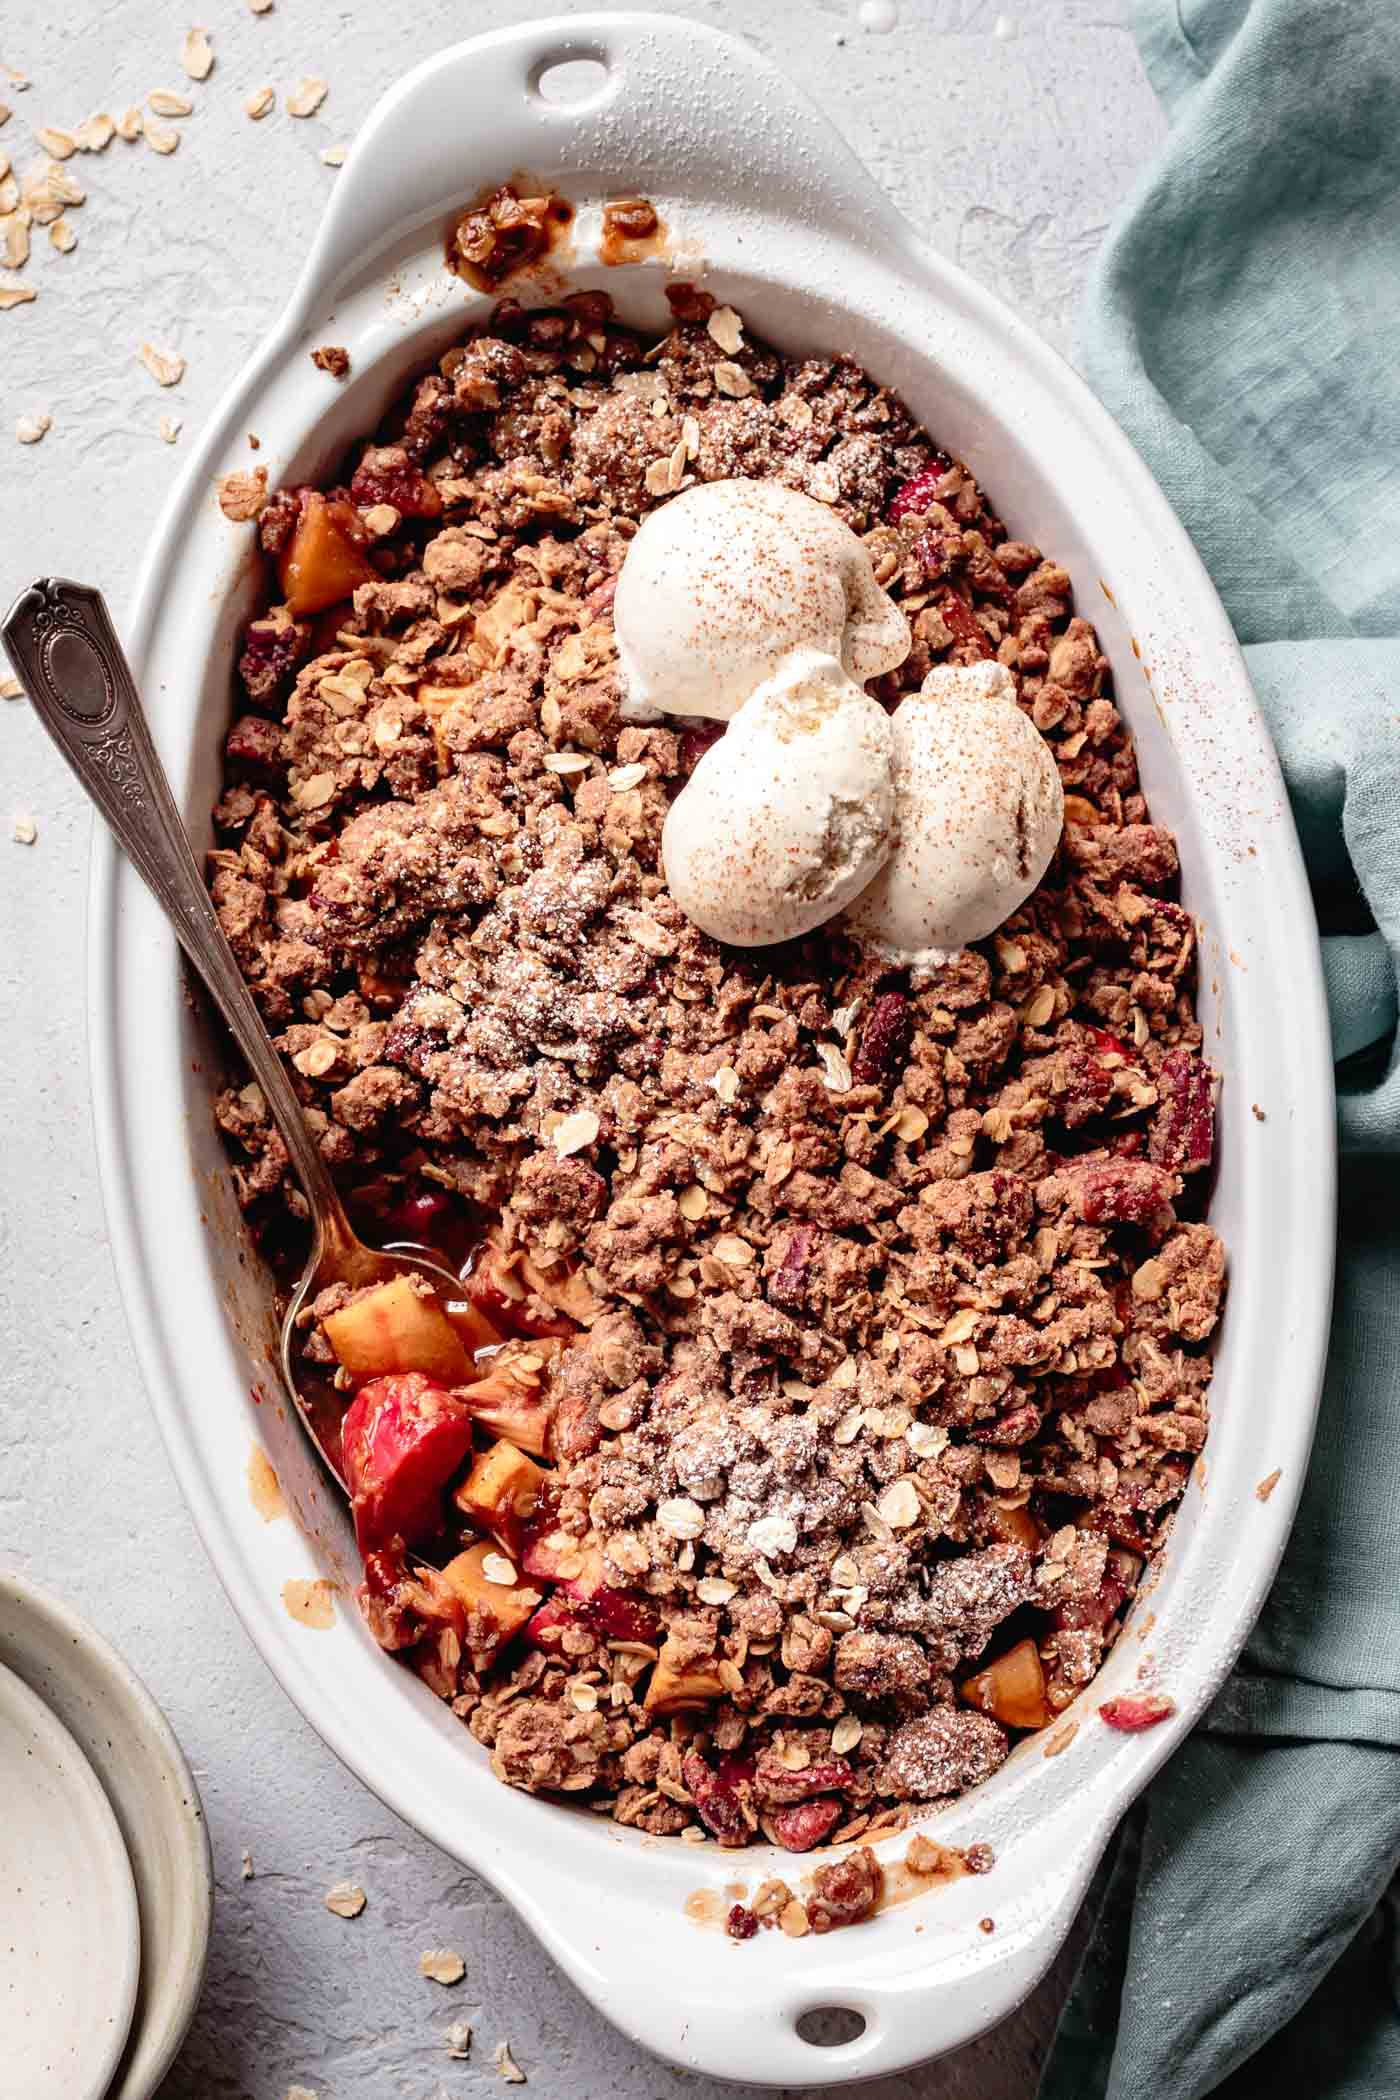 vegan gluten-free apple rhubarb crisp topped with ice cream